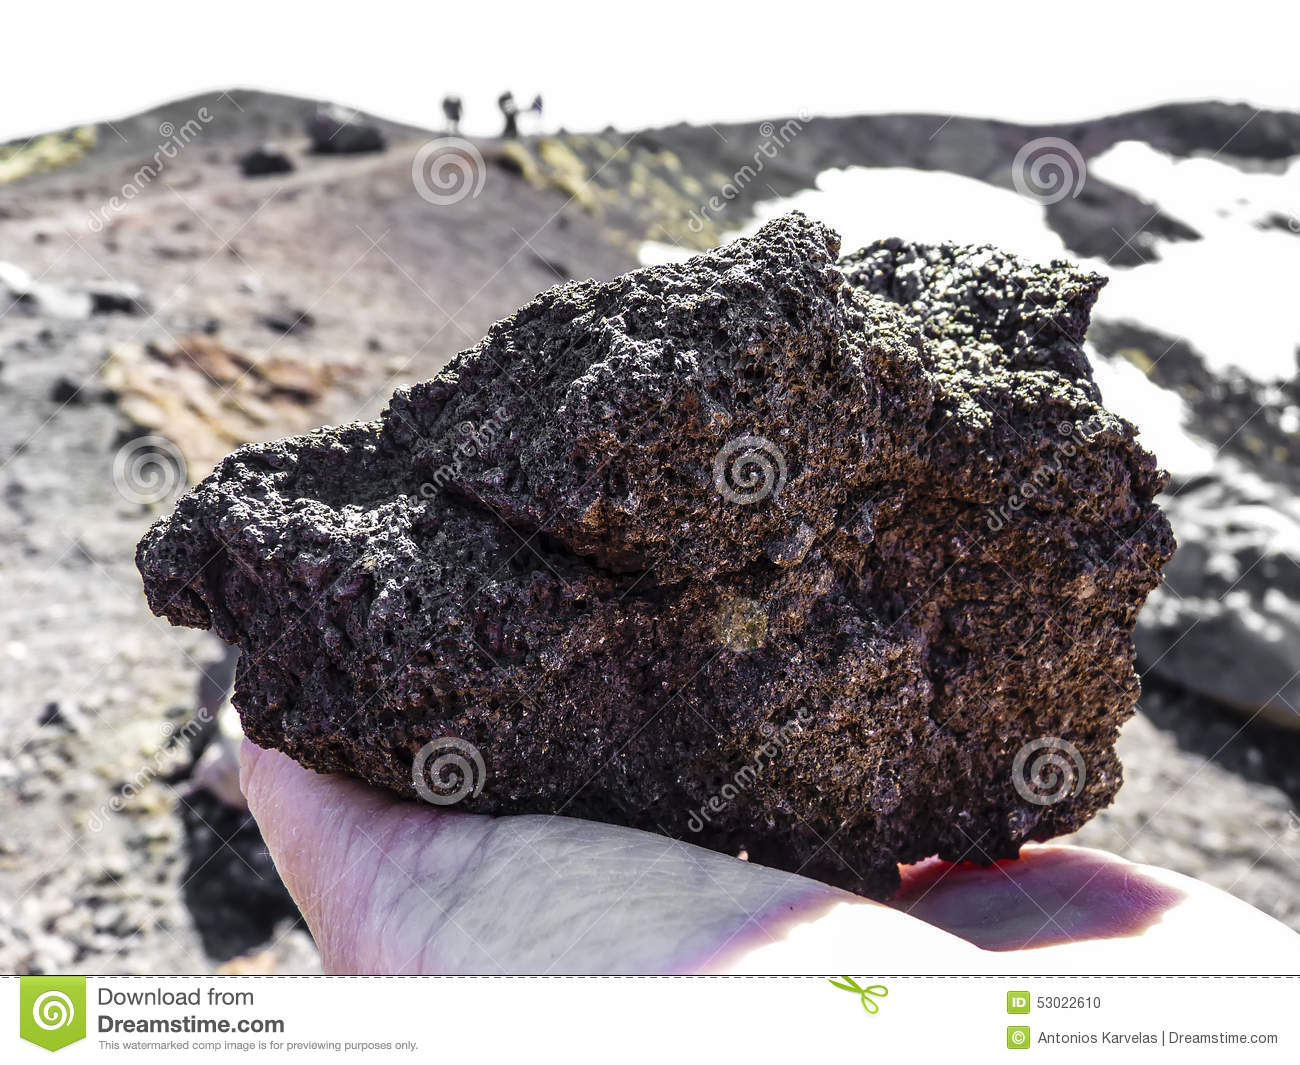 mount etna rock dating Why does italy's mount etna keep  mount's etna's busy pace produces enough  and careful age dating, to sort that out an outlier etna's location is.